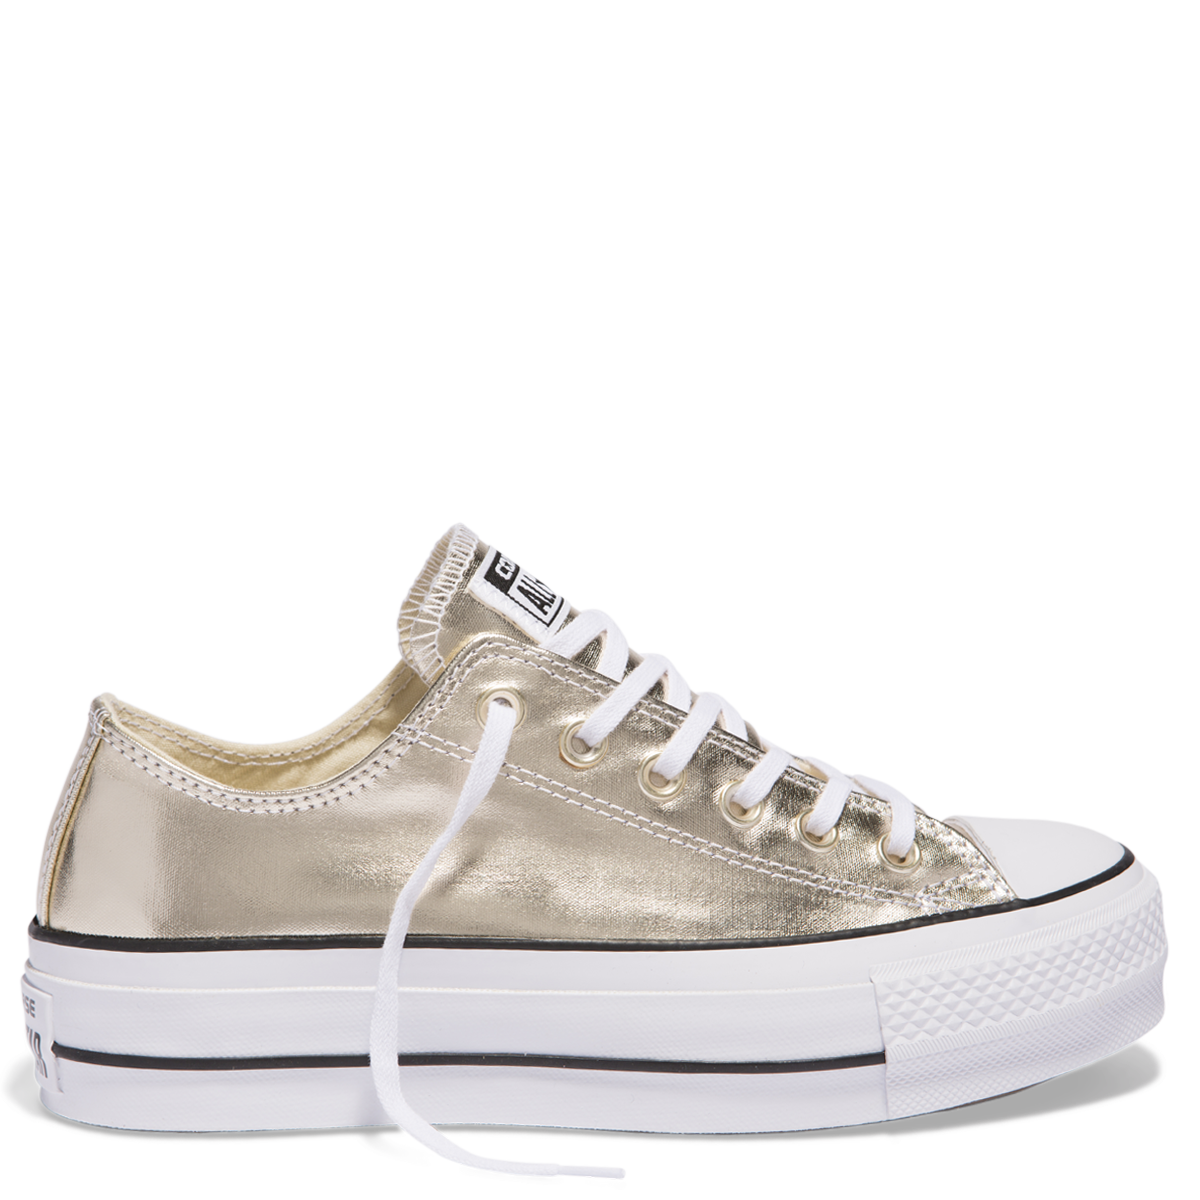 1ccade5dbb892 Chuck Taylor All Star Platform Lift Canvas Low Top Gold online at Converse.  Free shipping on orders over  75.